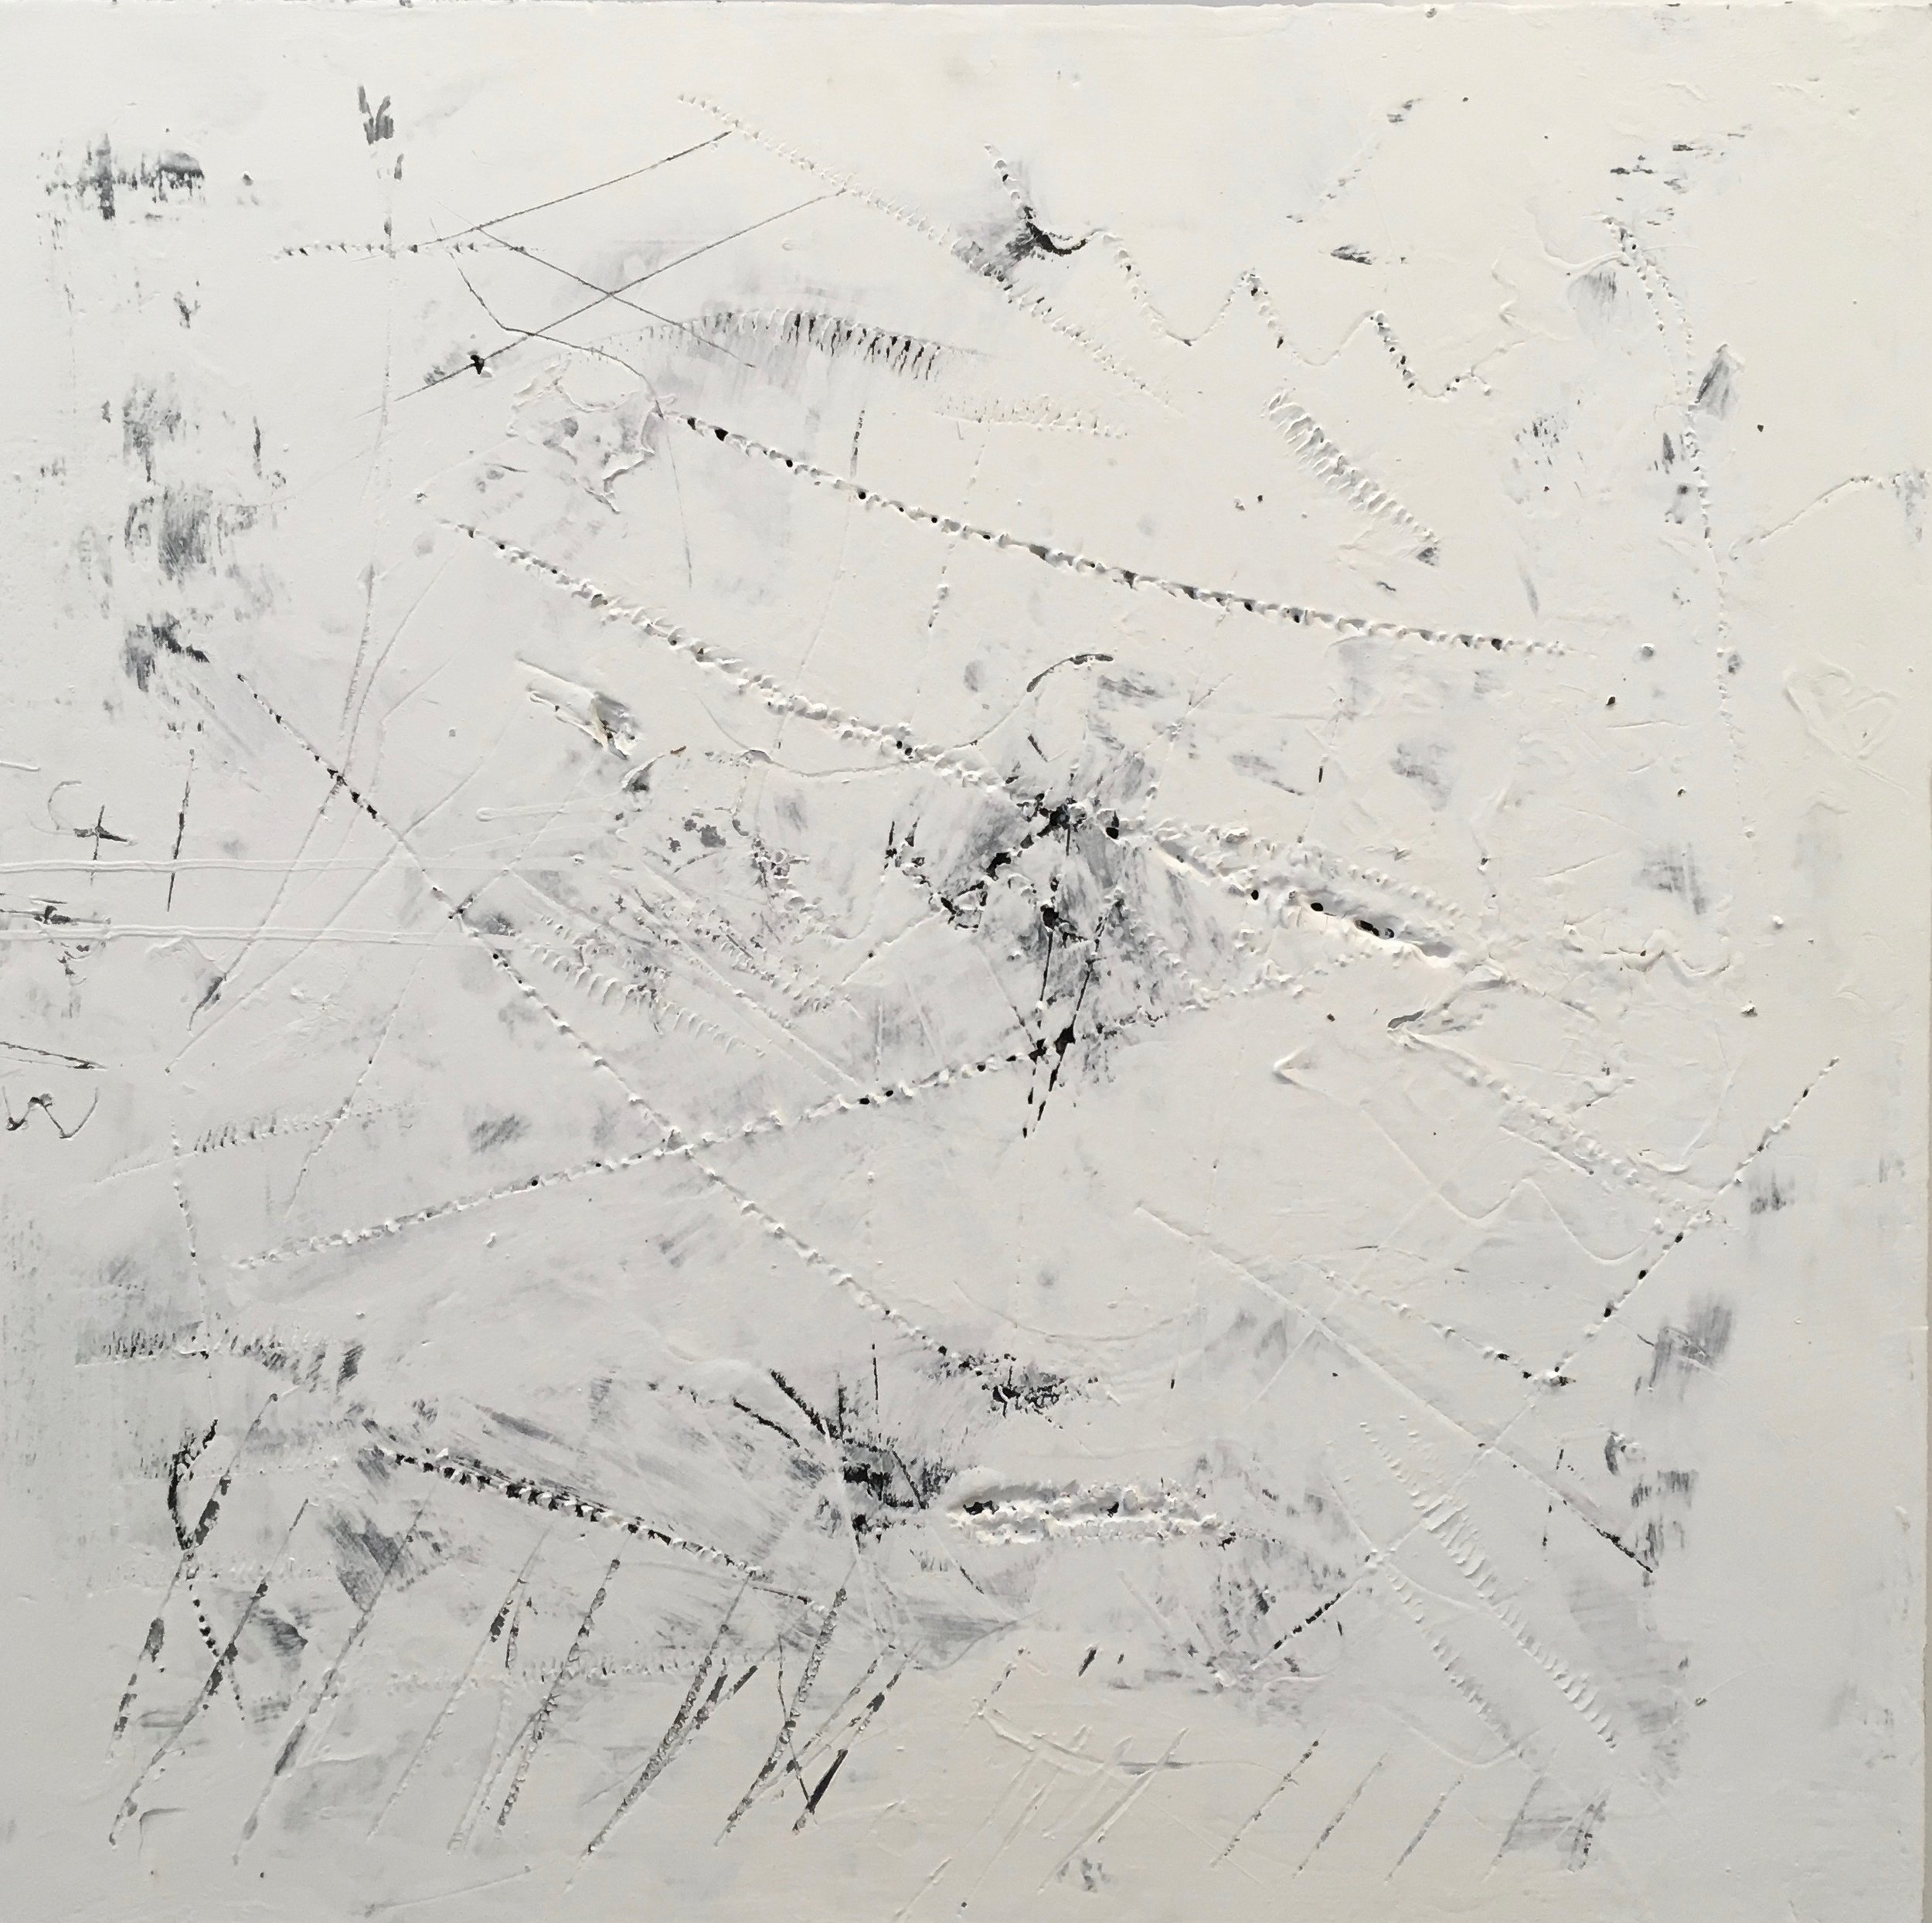 """Scratch Sketch #1"", 2013. Acrylic on insulation board, 24 x 24 in."